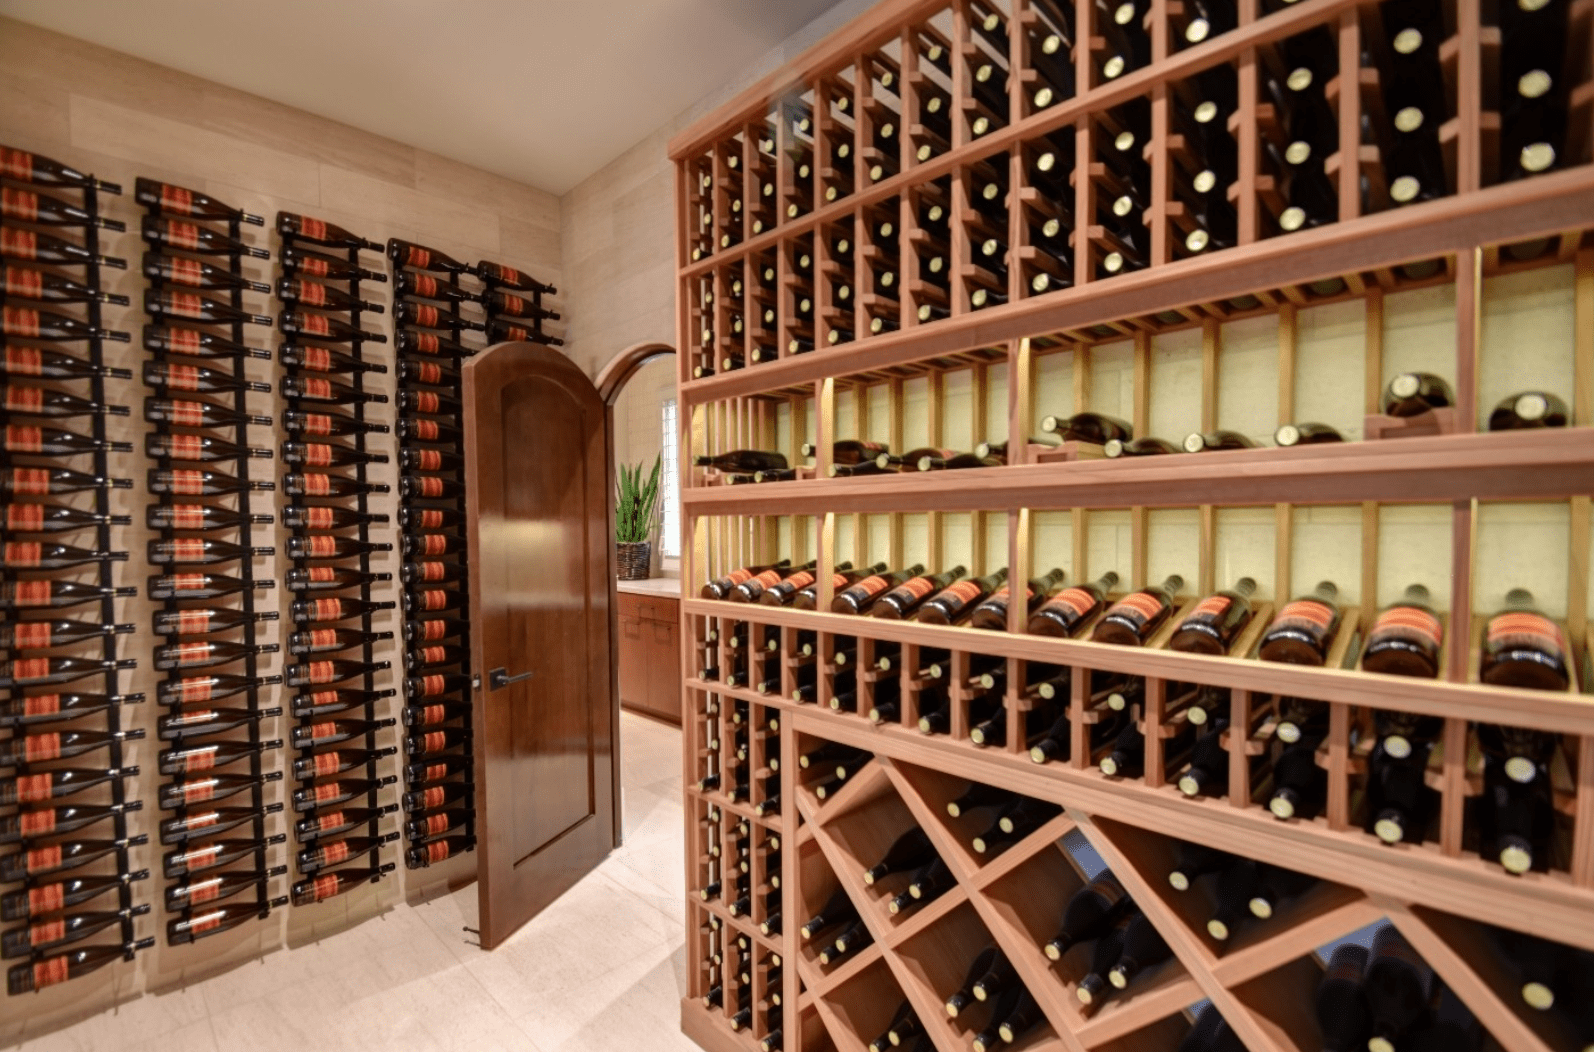 Vertical wine racks mounted on a light wooden plank wall along with a custom designed rack accented by cross cut wine racks.